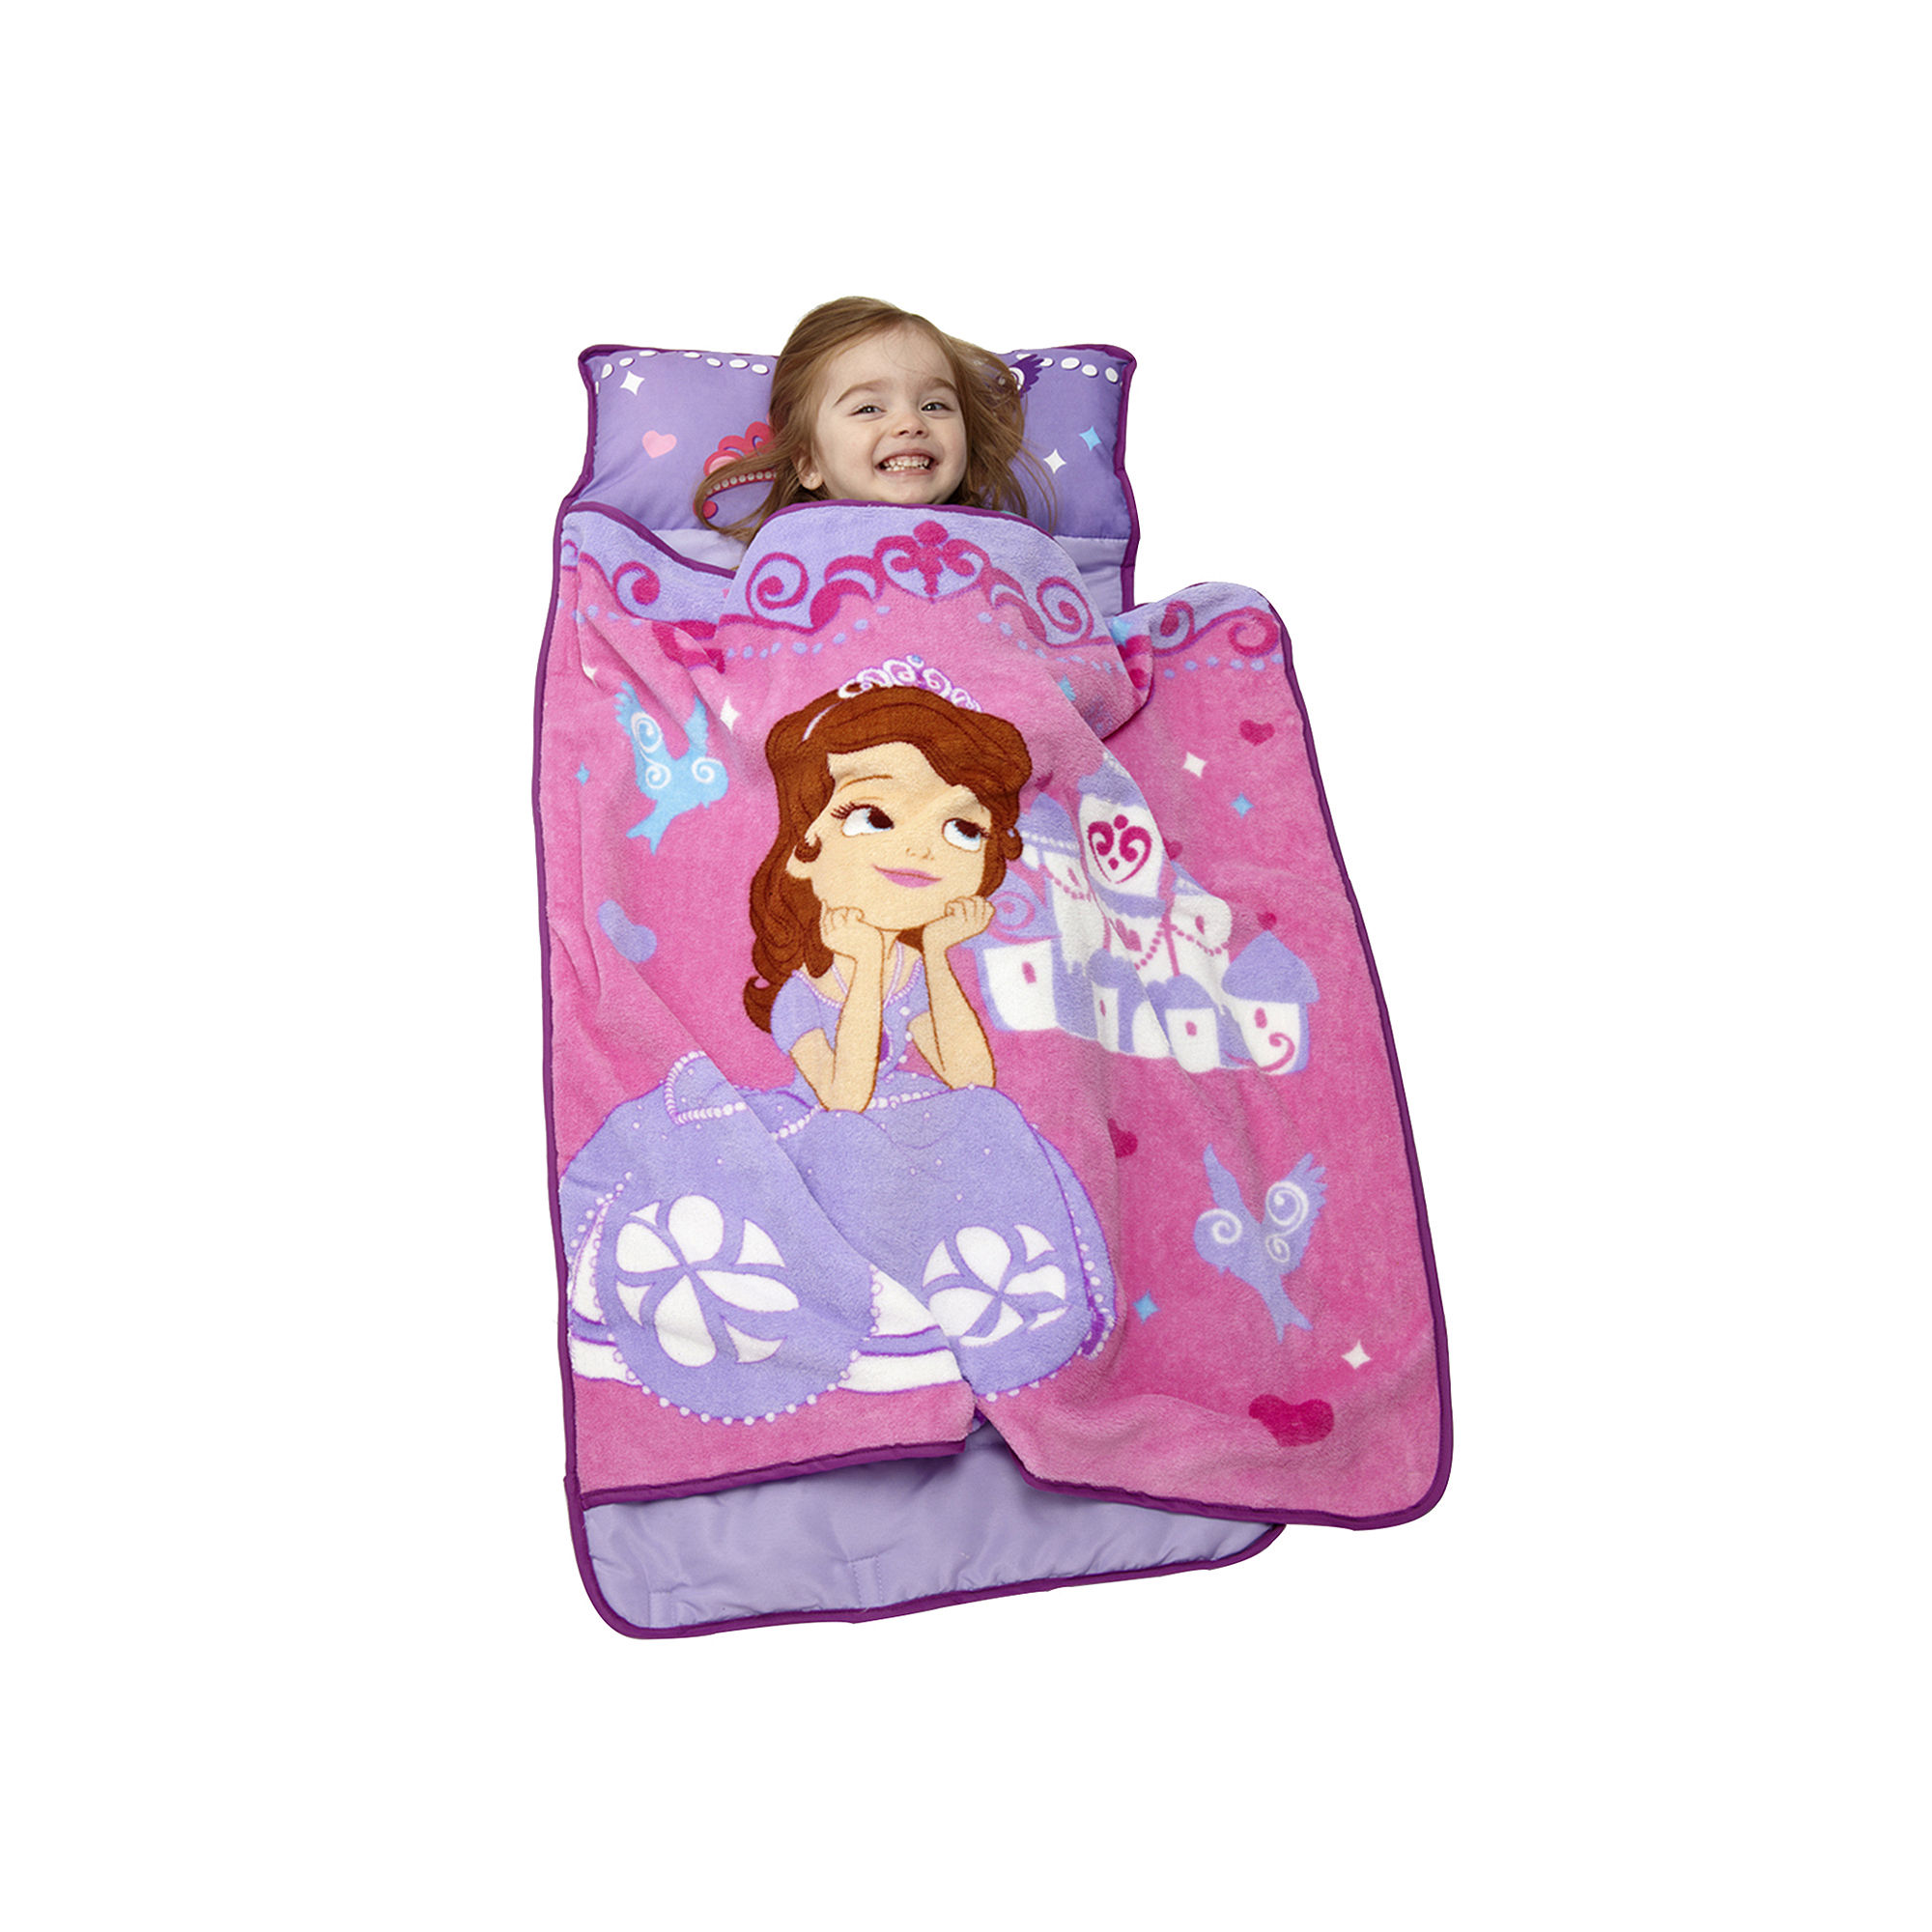 085214090733 Upc Disney Toddler Rolled Nap Mat Princess